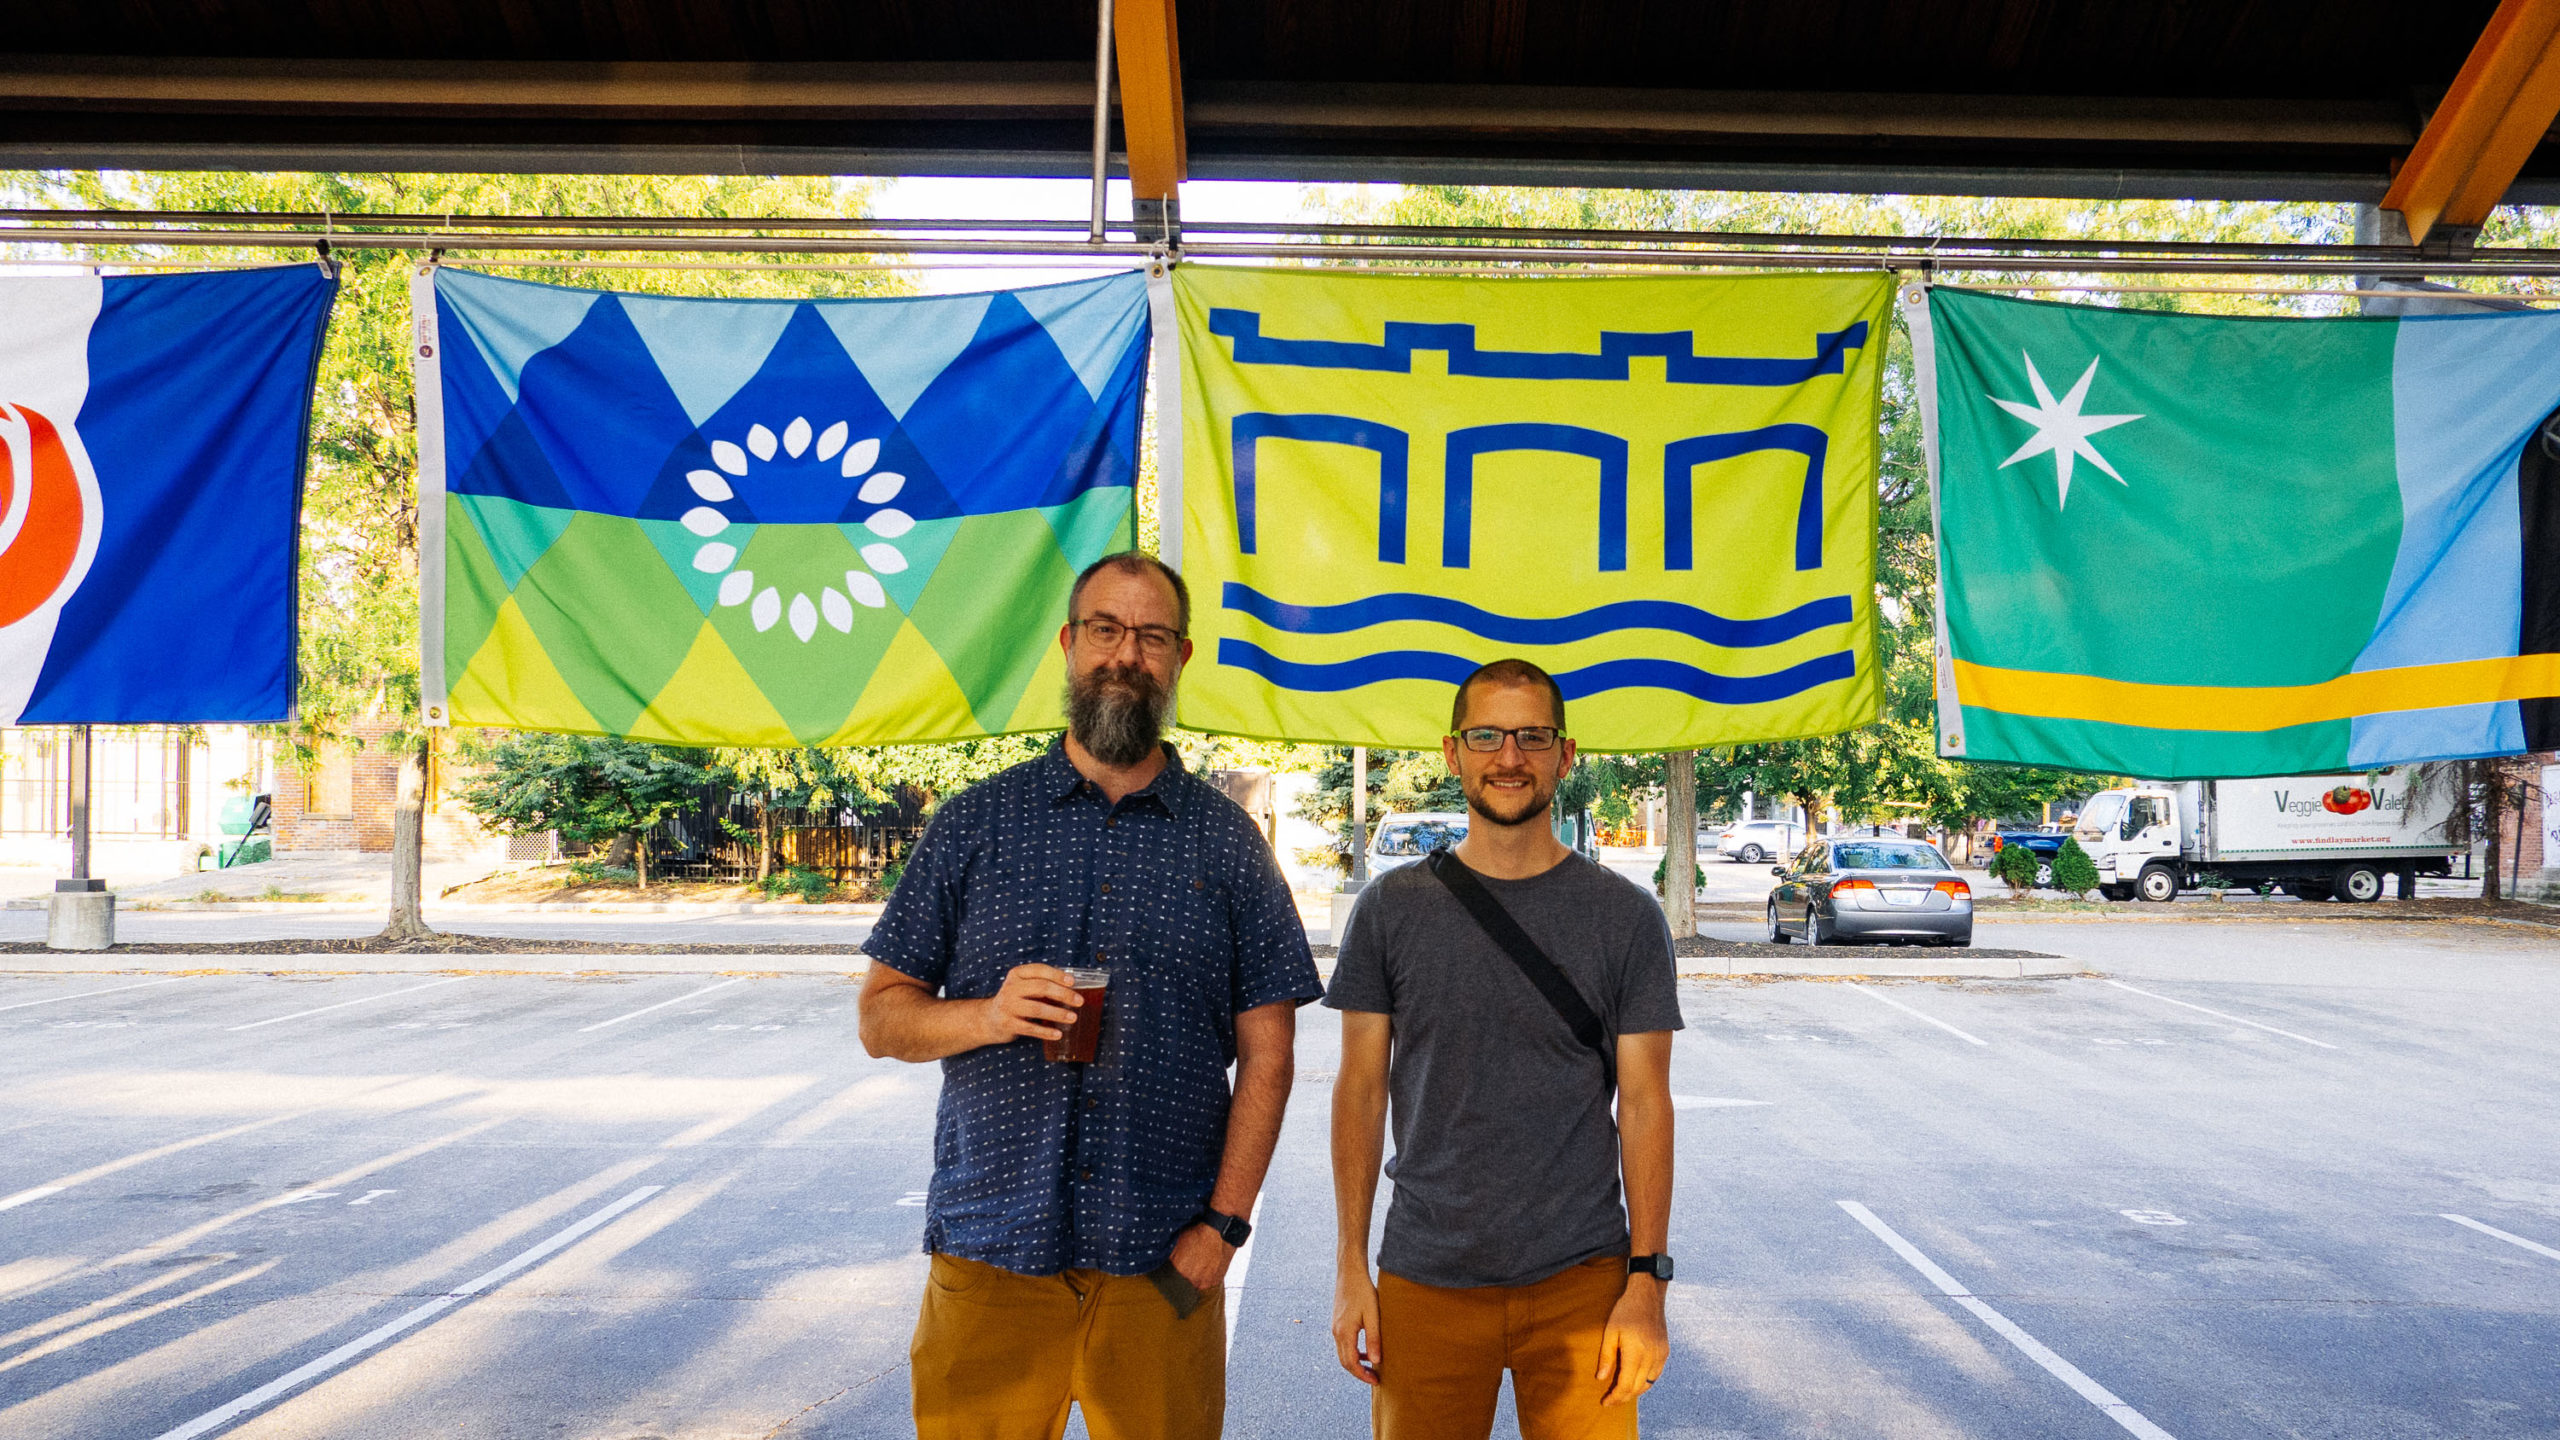 Two white men standing in front of colorful flags